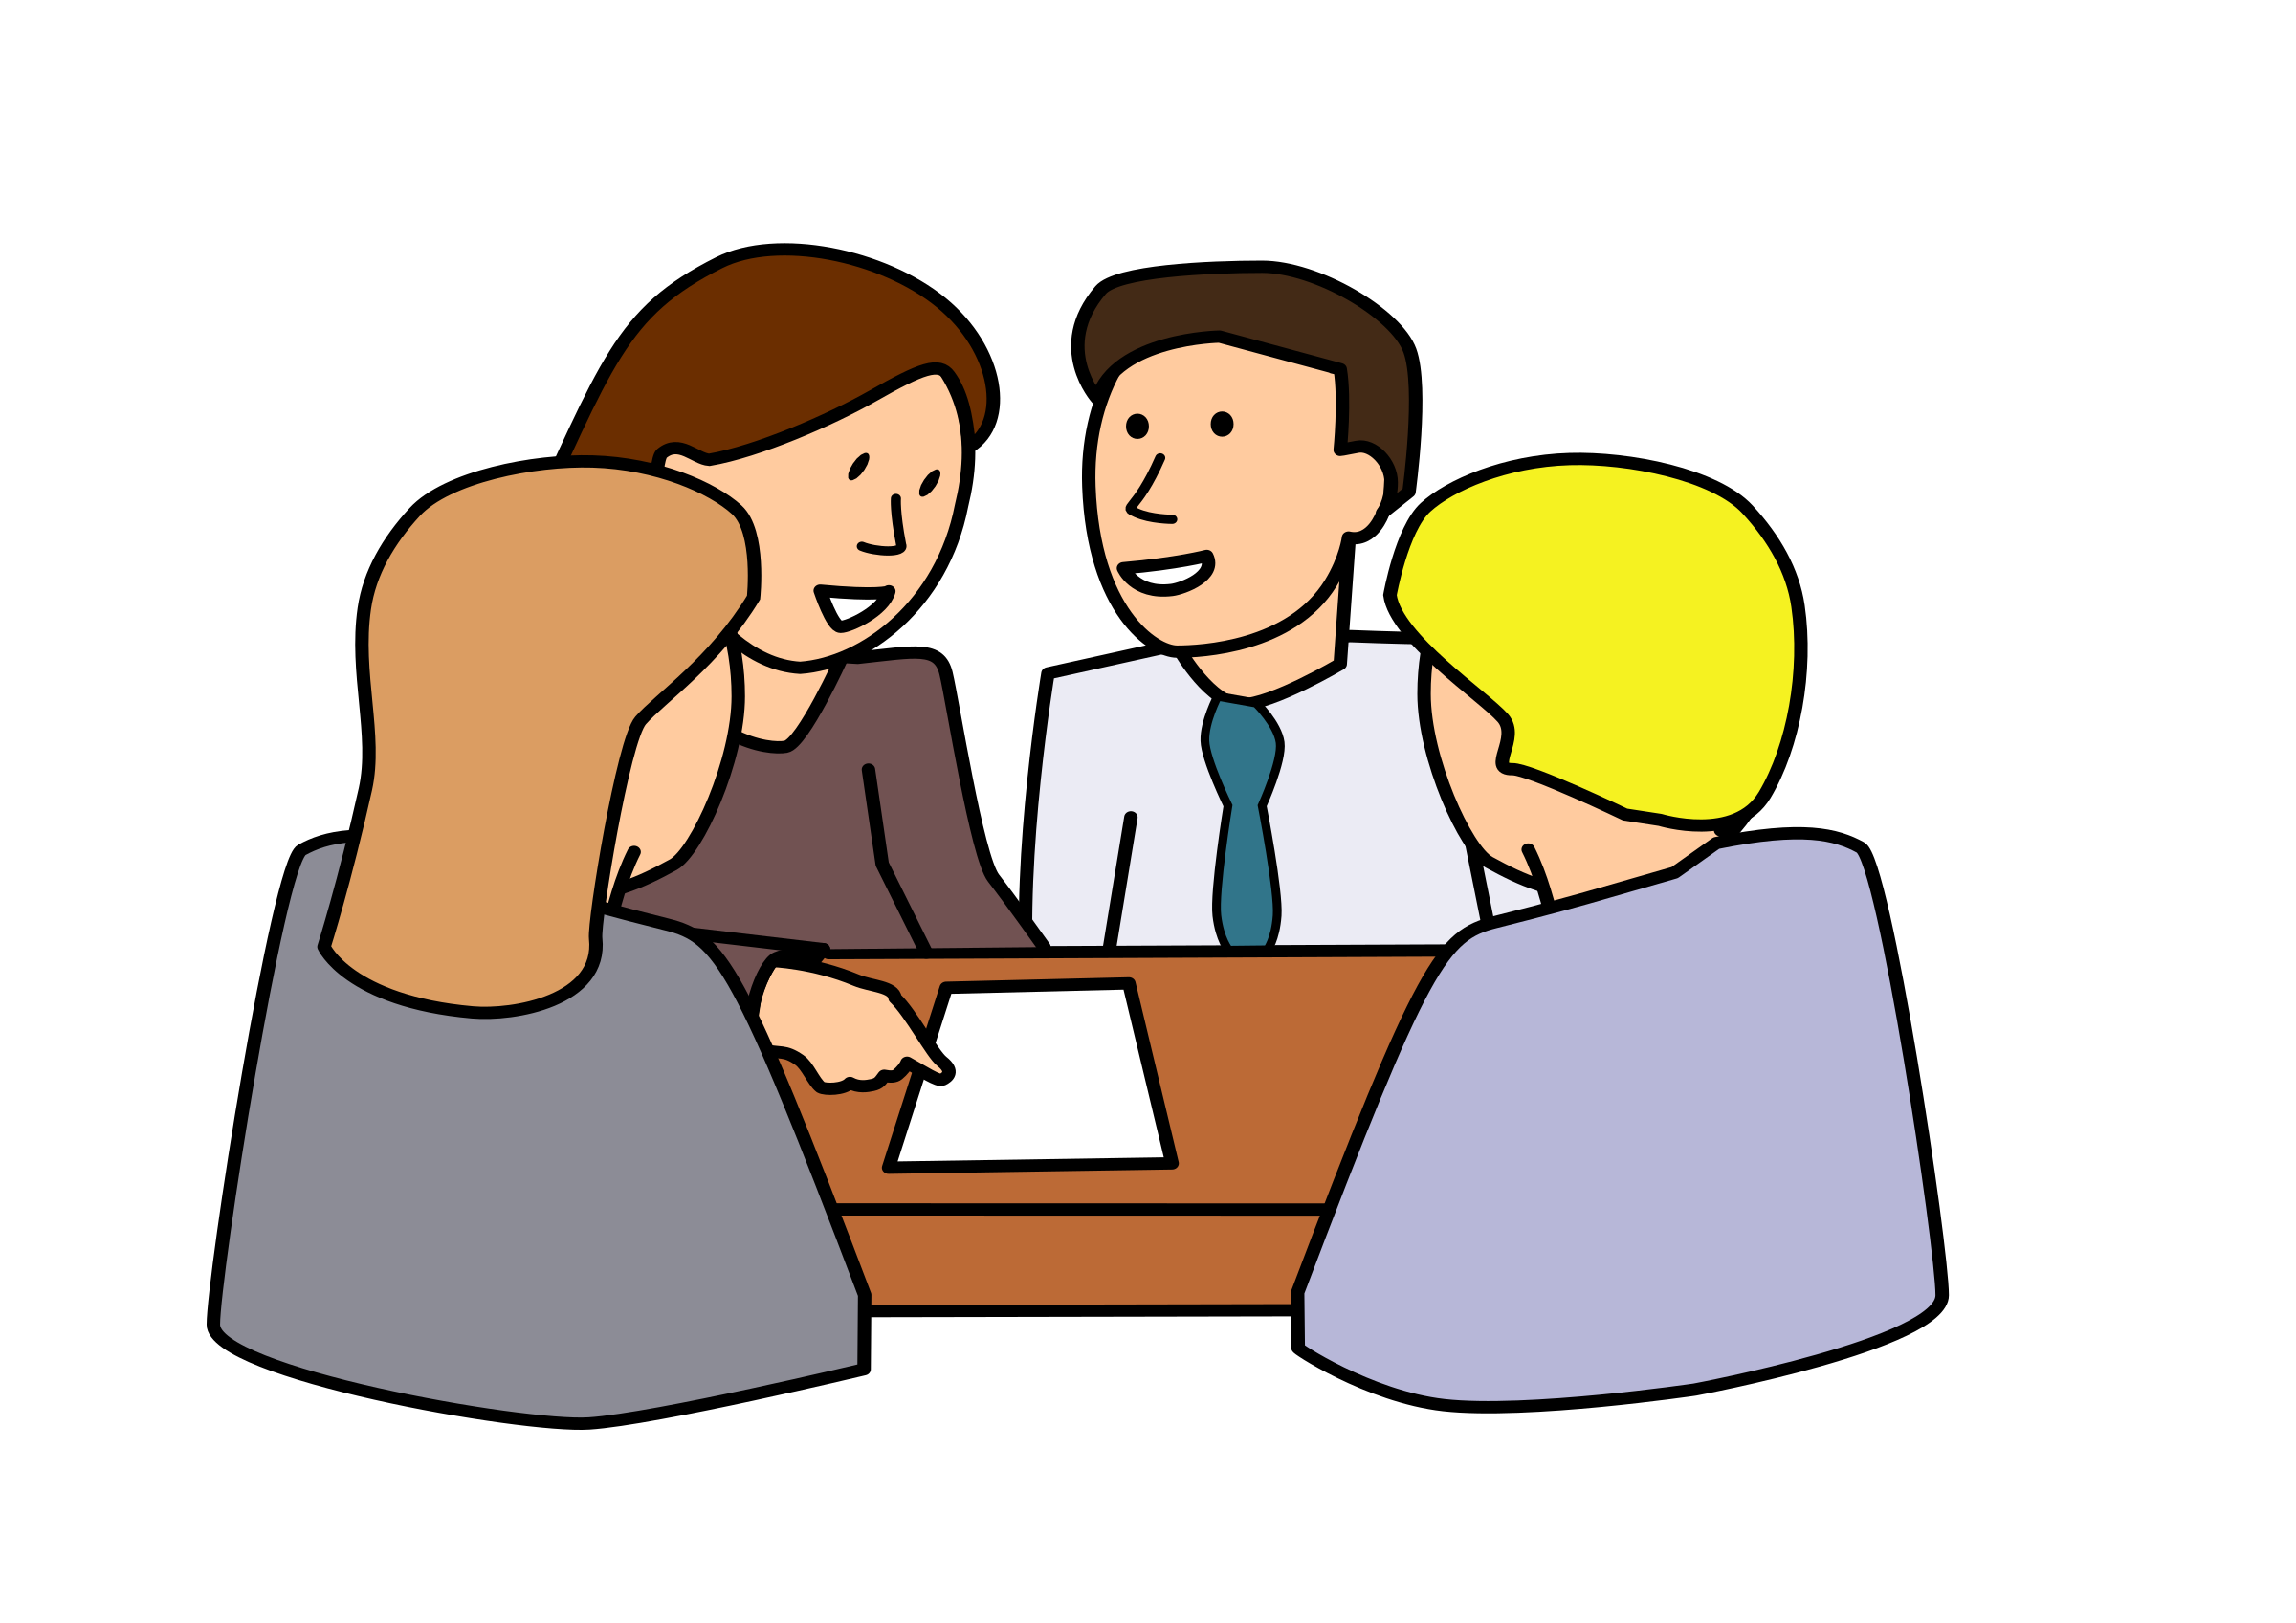 Group work clip art. Working clipart willingness